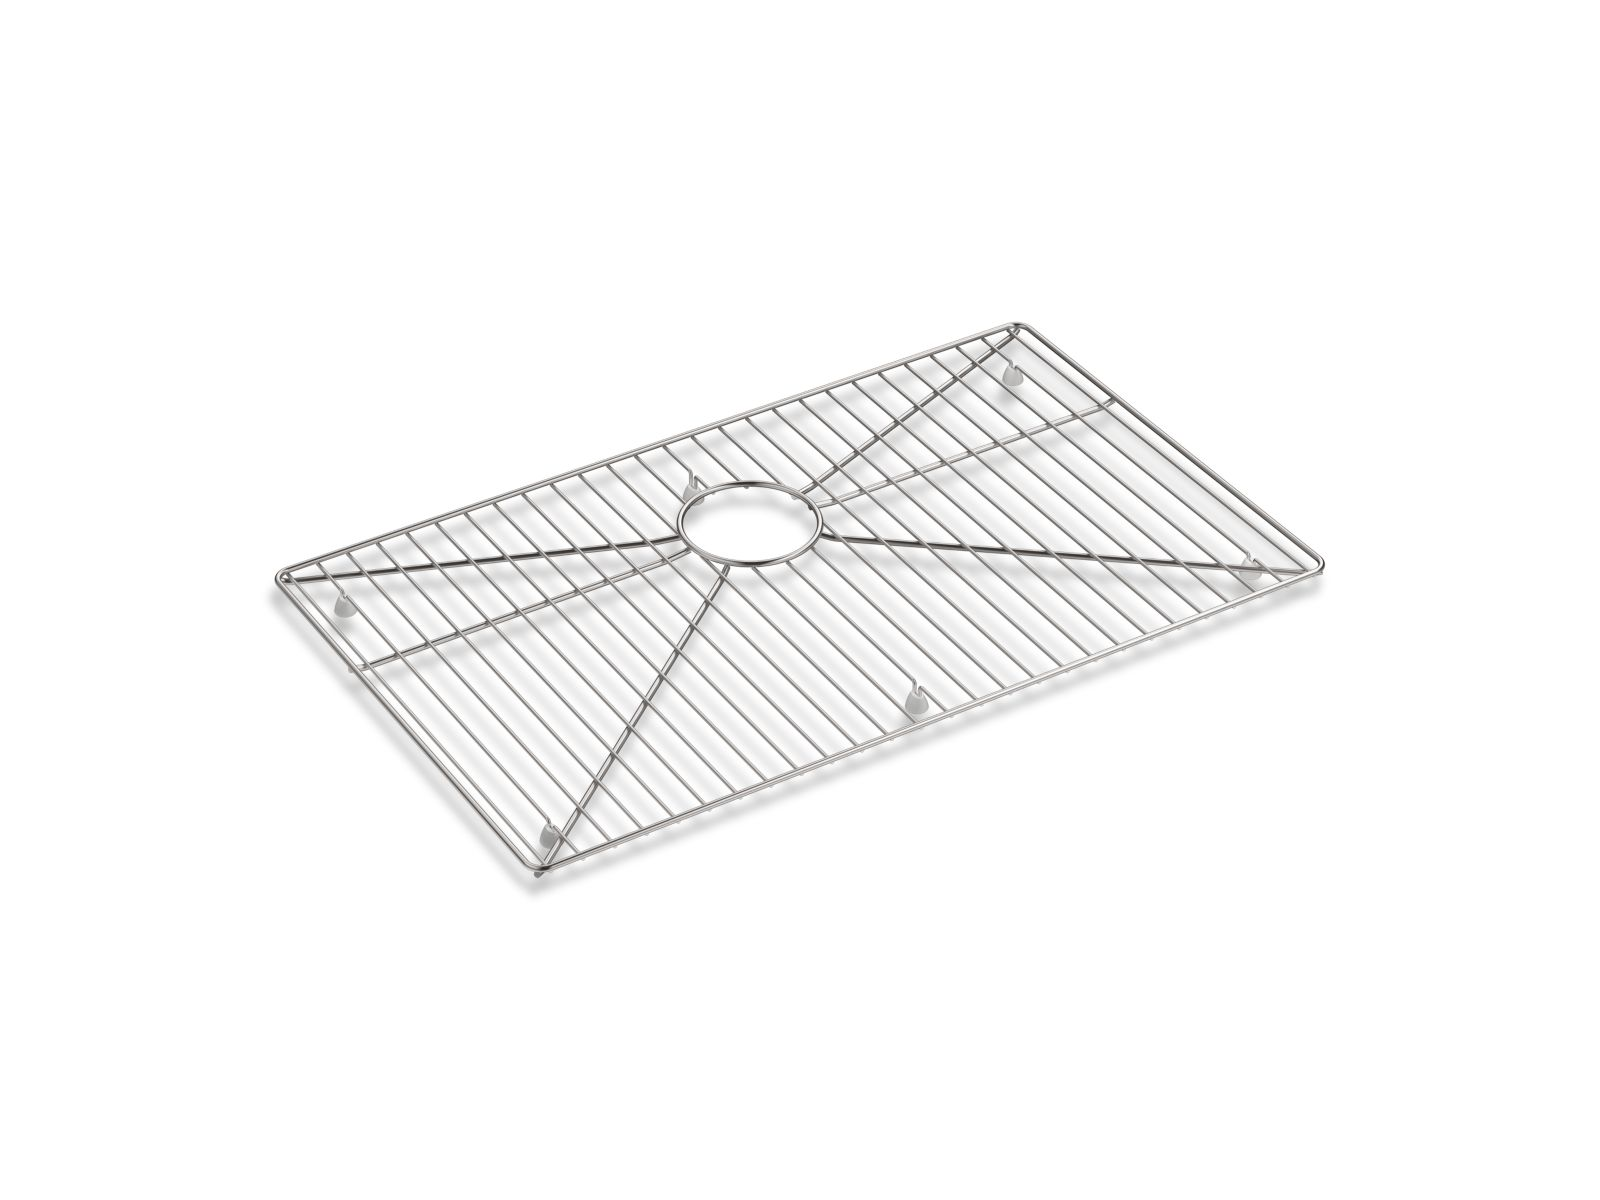 "Kohler K-5408-ST Stainless steel sink rack, 26-3/4"" x 16"" for K-5409 Strive™ kitchen sink Stainless Steel"